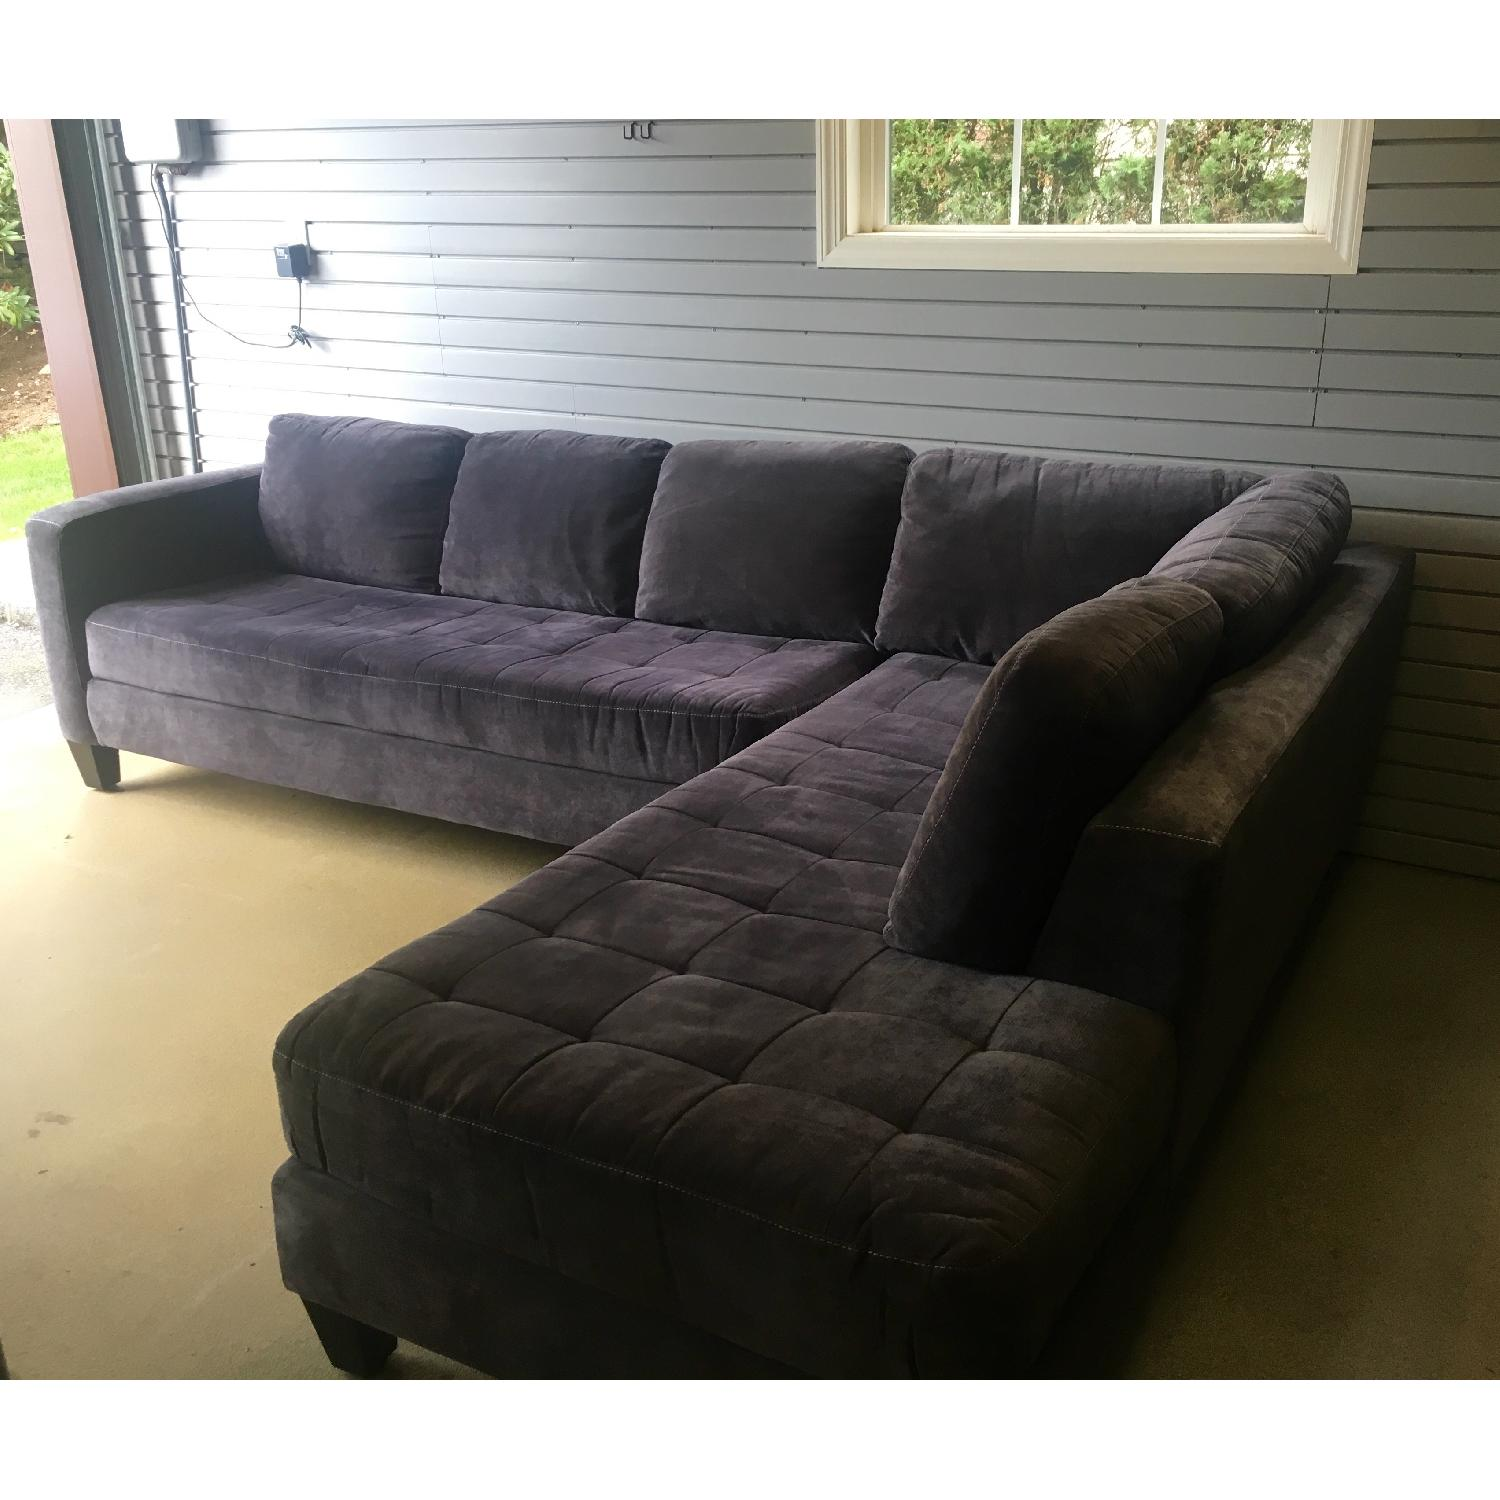 Macy's Large Charcoal Sectional - image-2